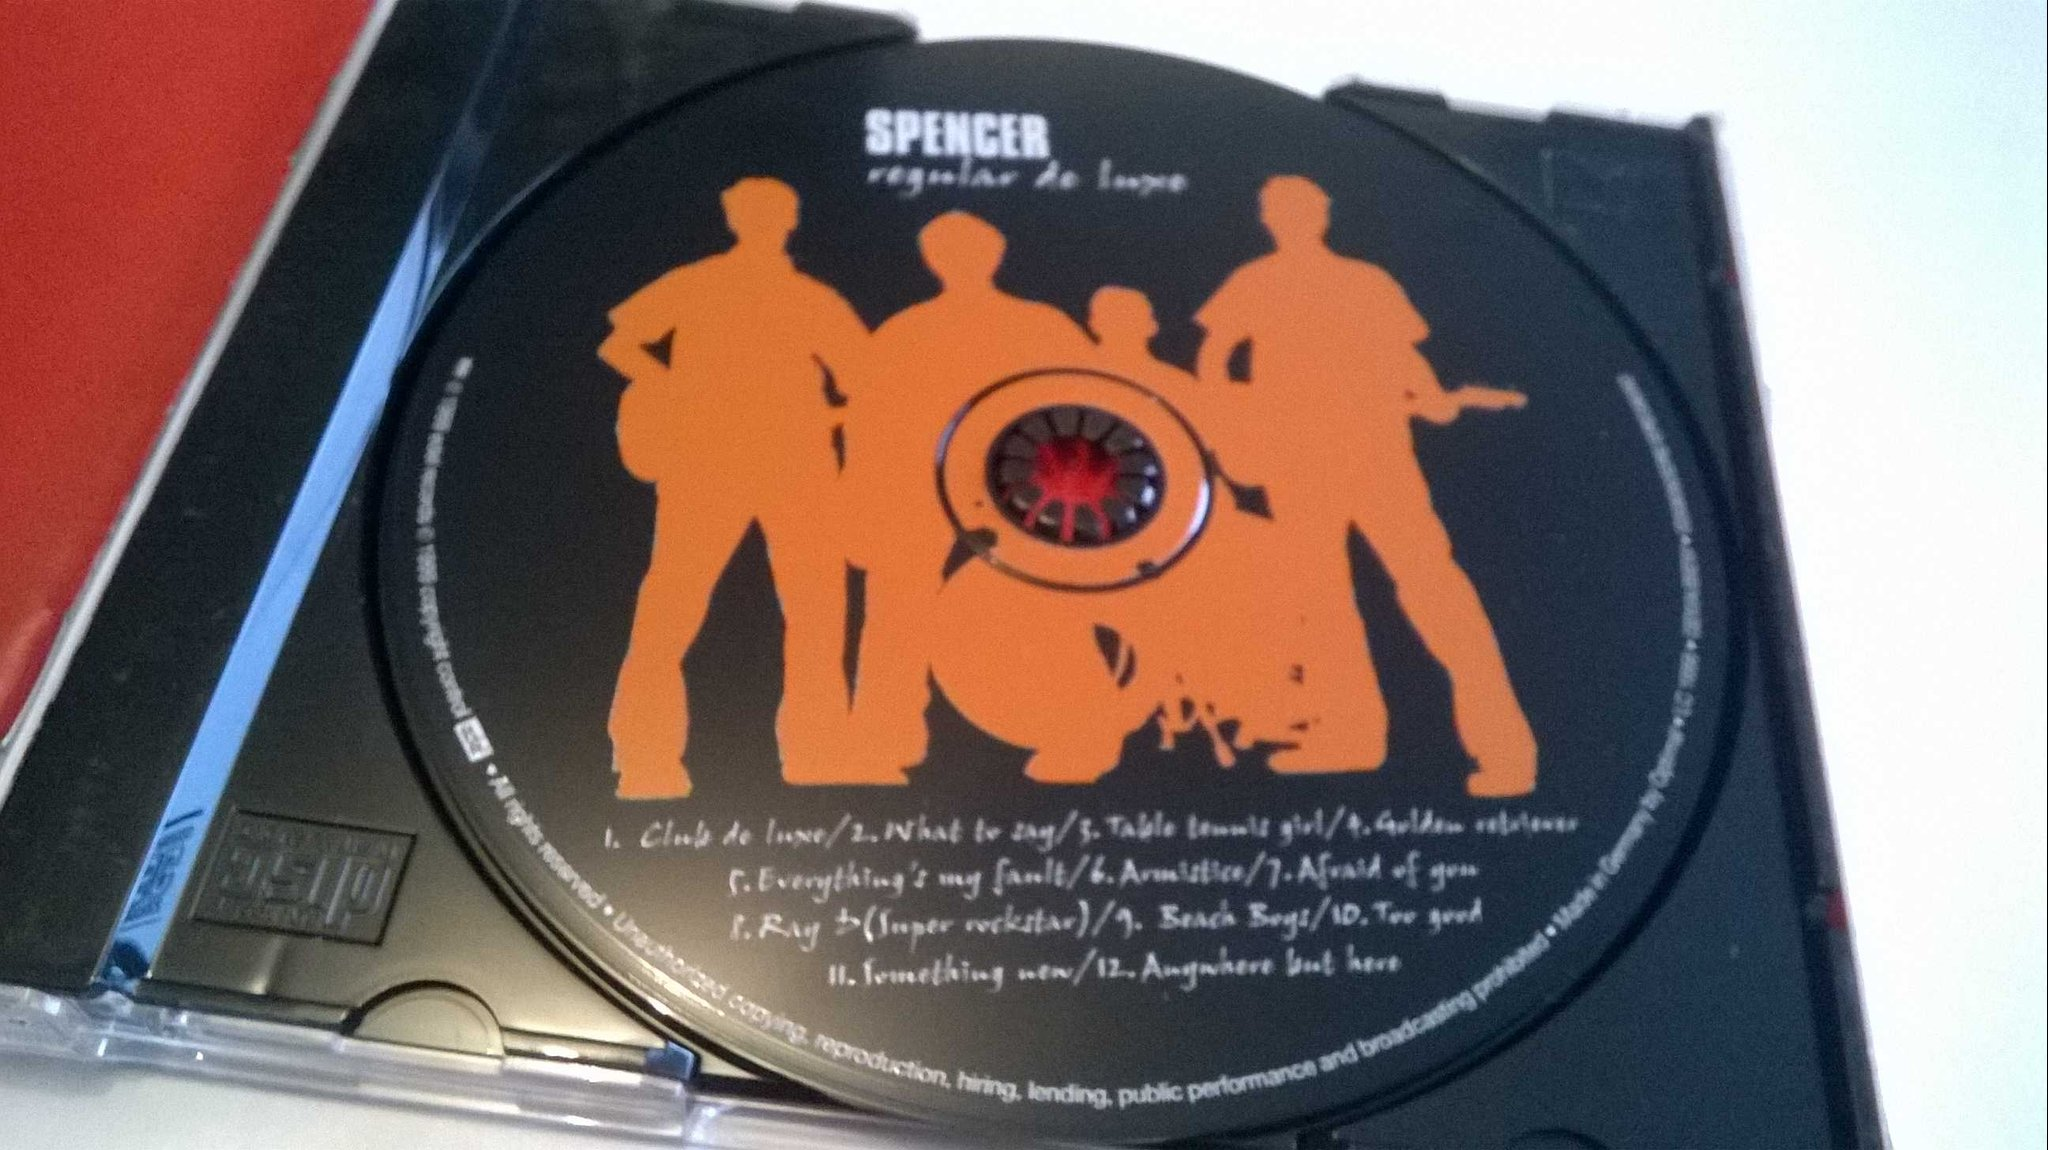 Spencer - Regular De Luxe, CD, very rare!